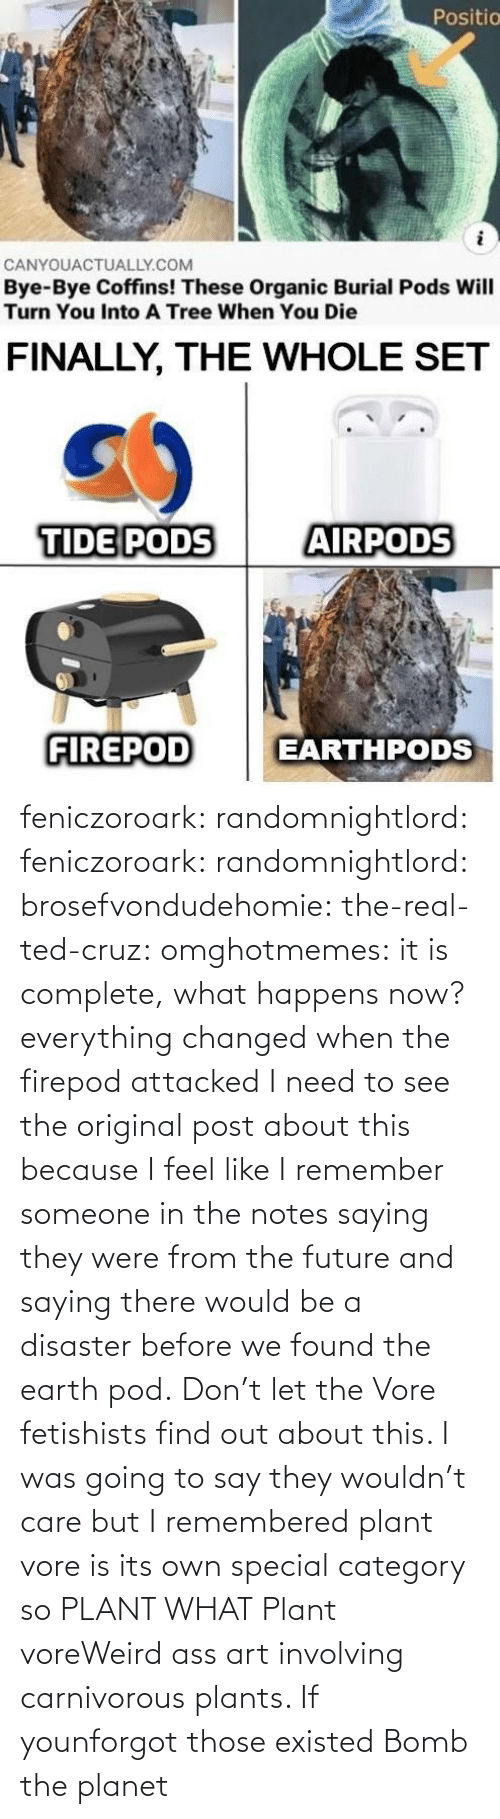 Find Out: feniczoroark:  randomnightlord:  feniczoroark:  randomnightlord:  brosefvondudehomie: the-real-ted-cruz:  omghotmemes: it is complete, what happens now? everything changed when the firepod attacked    I need to see the original post about this because I feel like I remember someone in the notes saying they were from the future and saying there would be a disaster before we found the earth pod.    Don't let the Vore fetishists find out about this.    I was going to say they wouldn't care but I remembered plant vore is its own special category so   PLANT WHAT   Plant voreWeird ass art involving carnivorous plants. If younforgot those existed   Bomb the planet